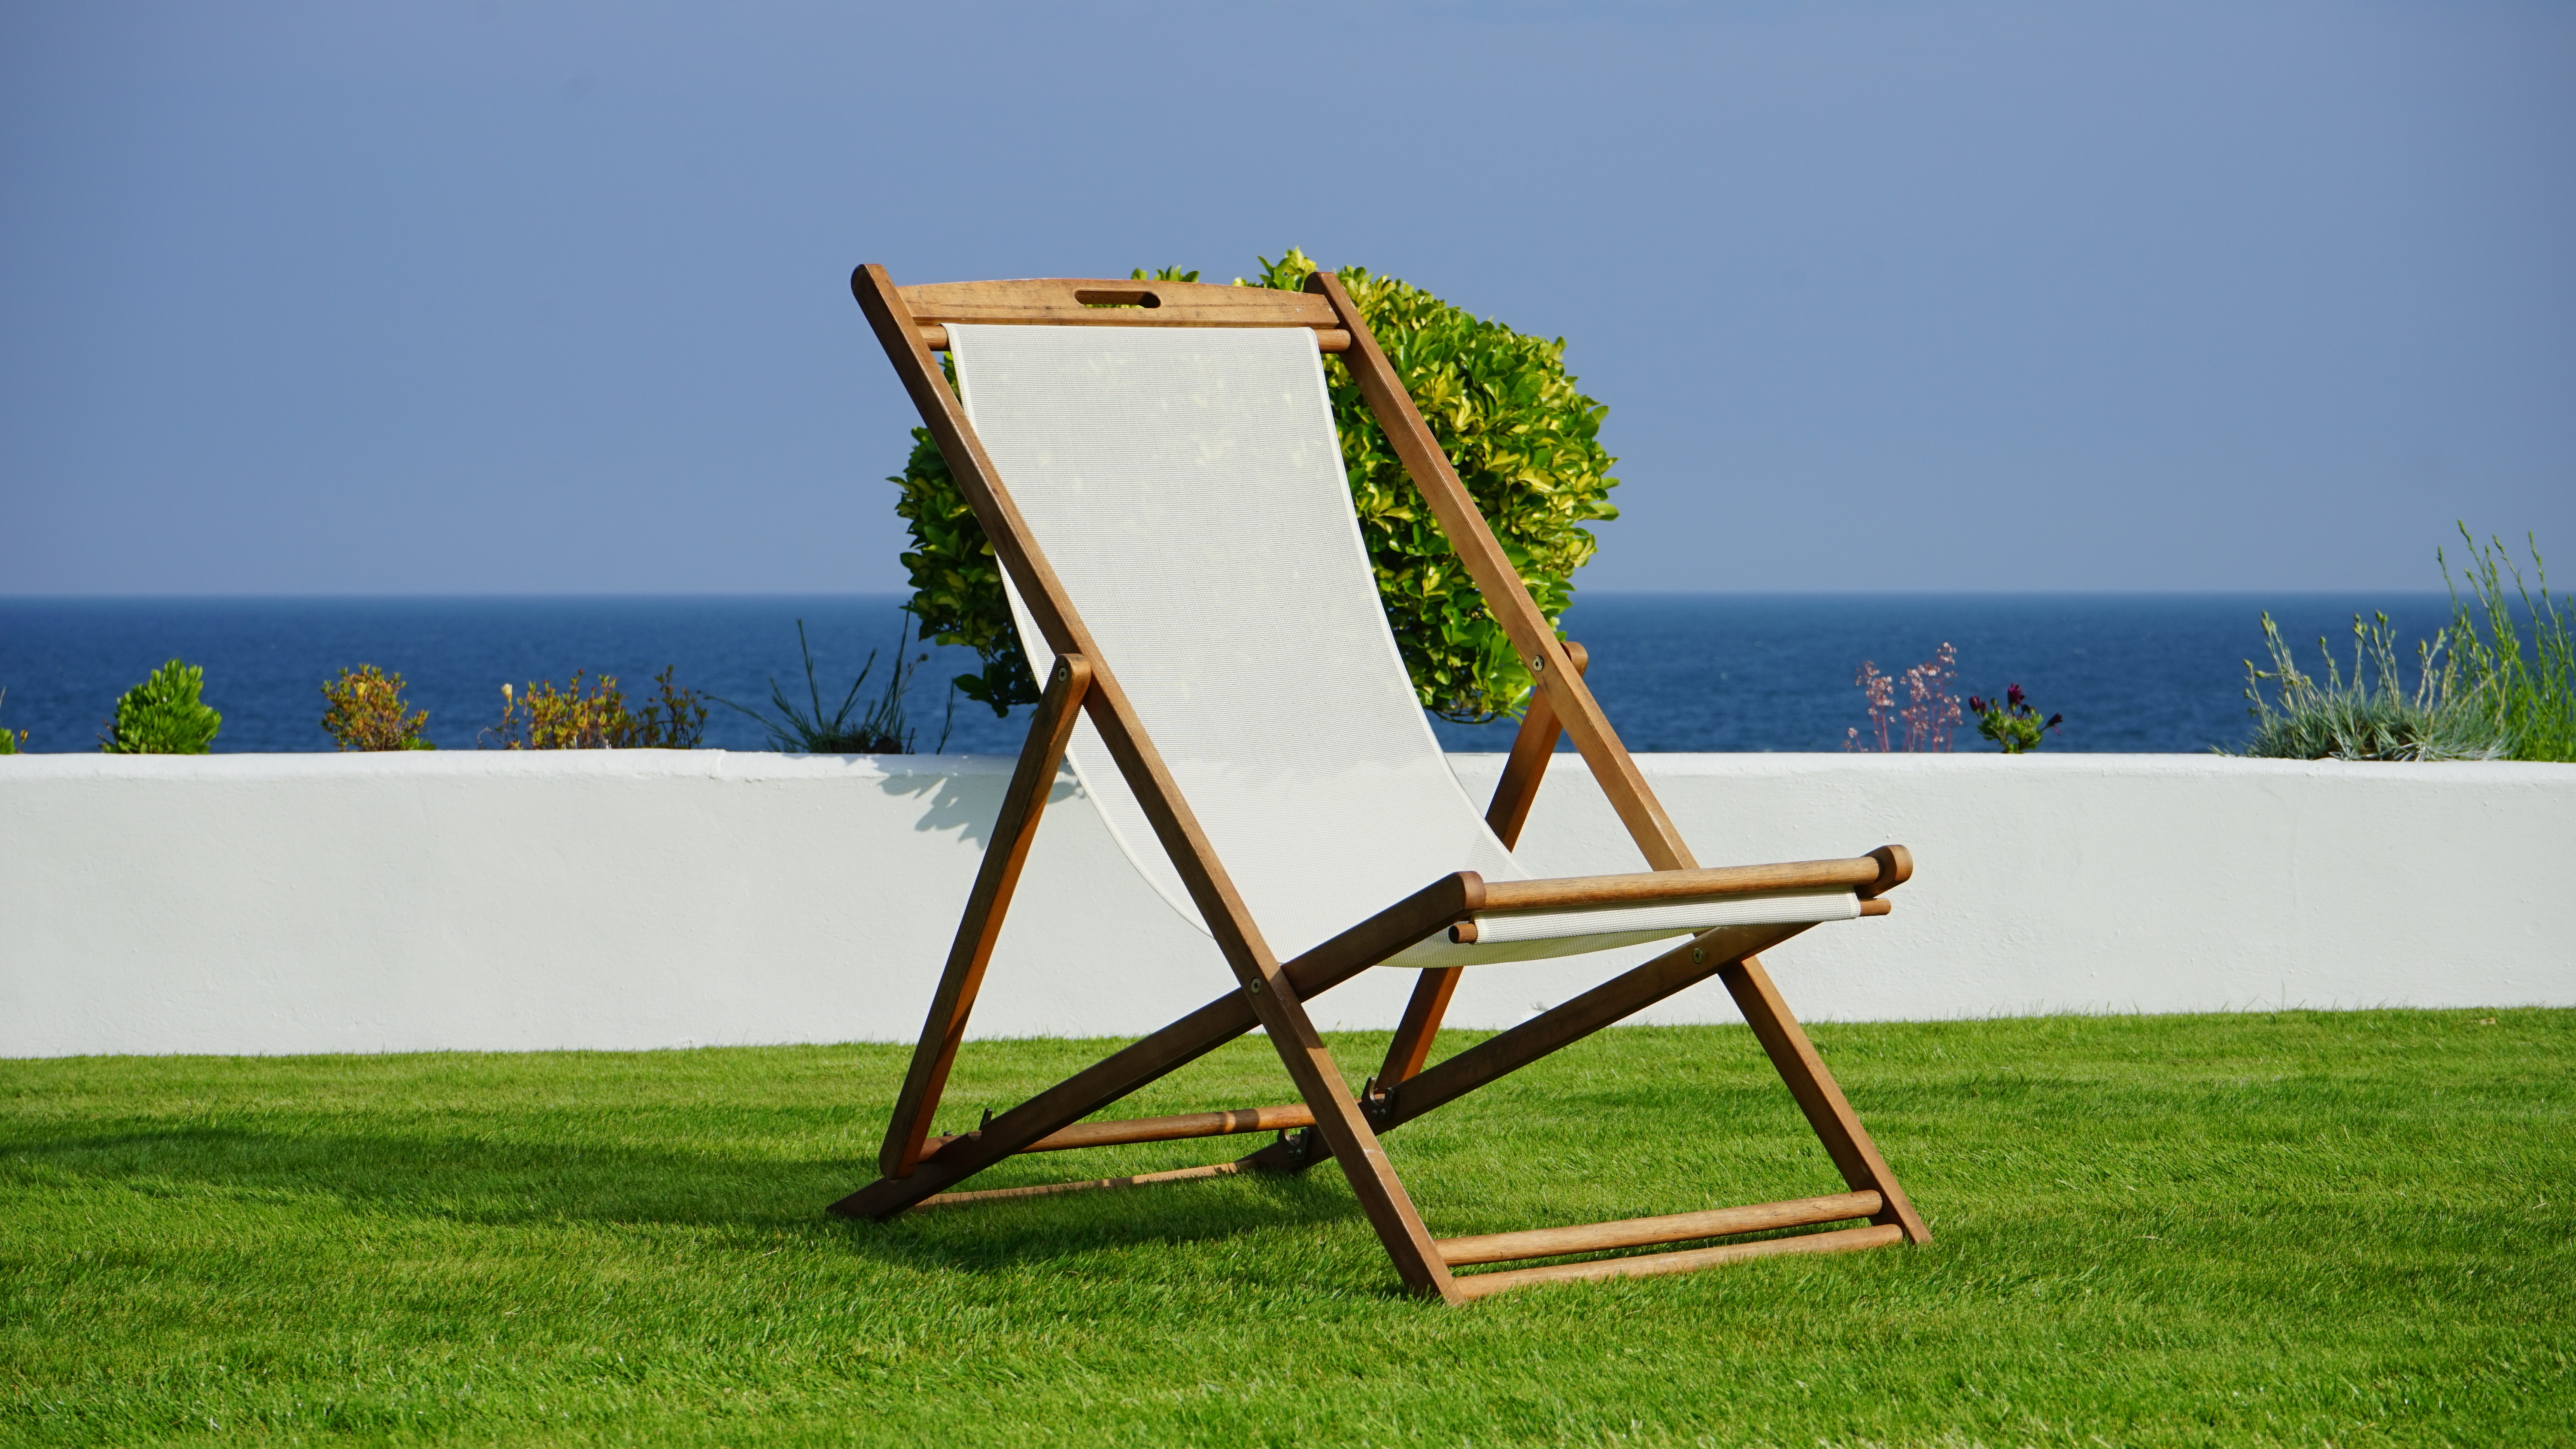 Brown and White Wooden Lounger, Blue, Ocean, Water, Vacation, HQ Photo